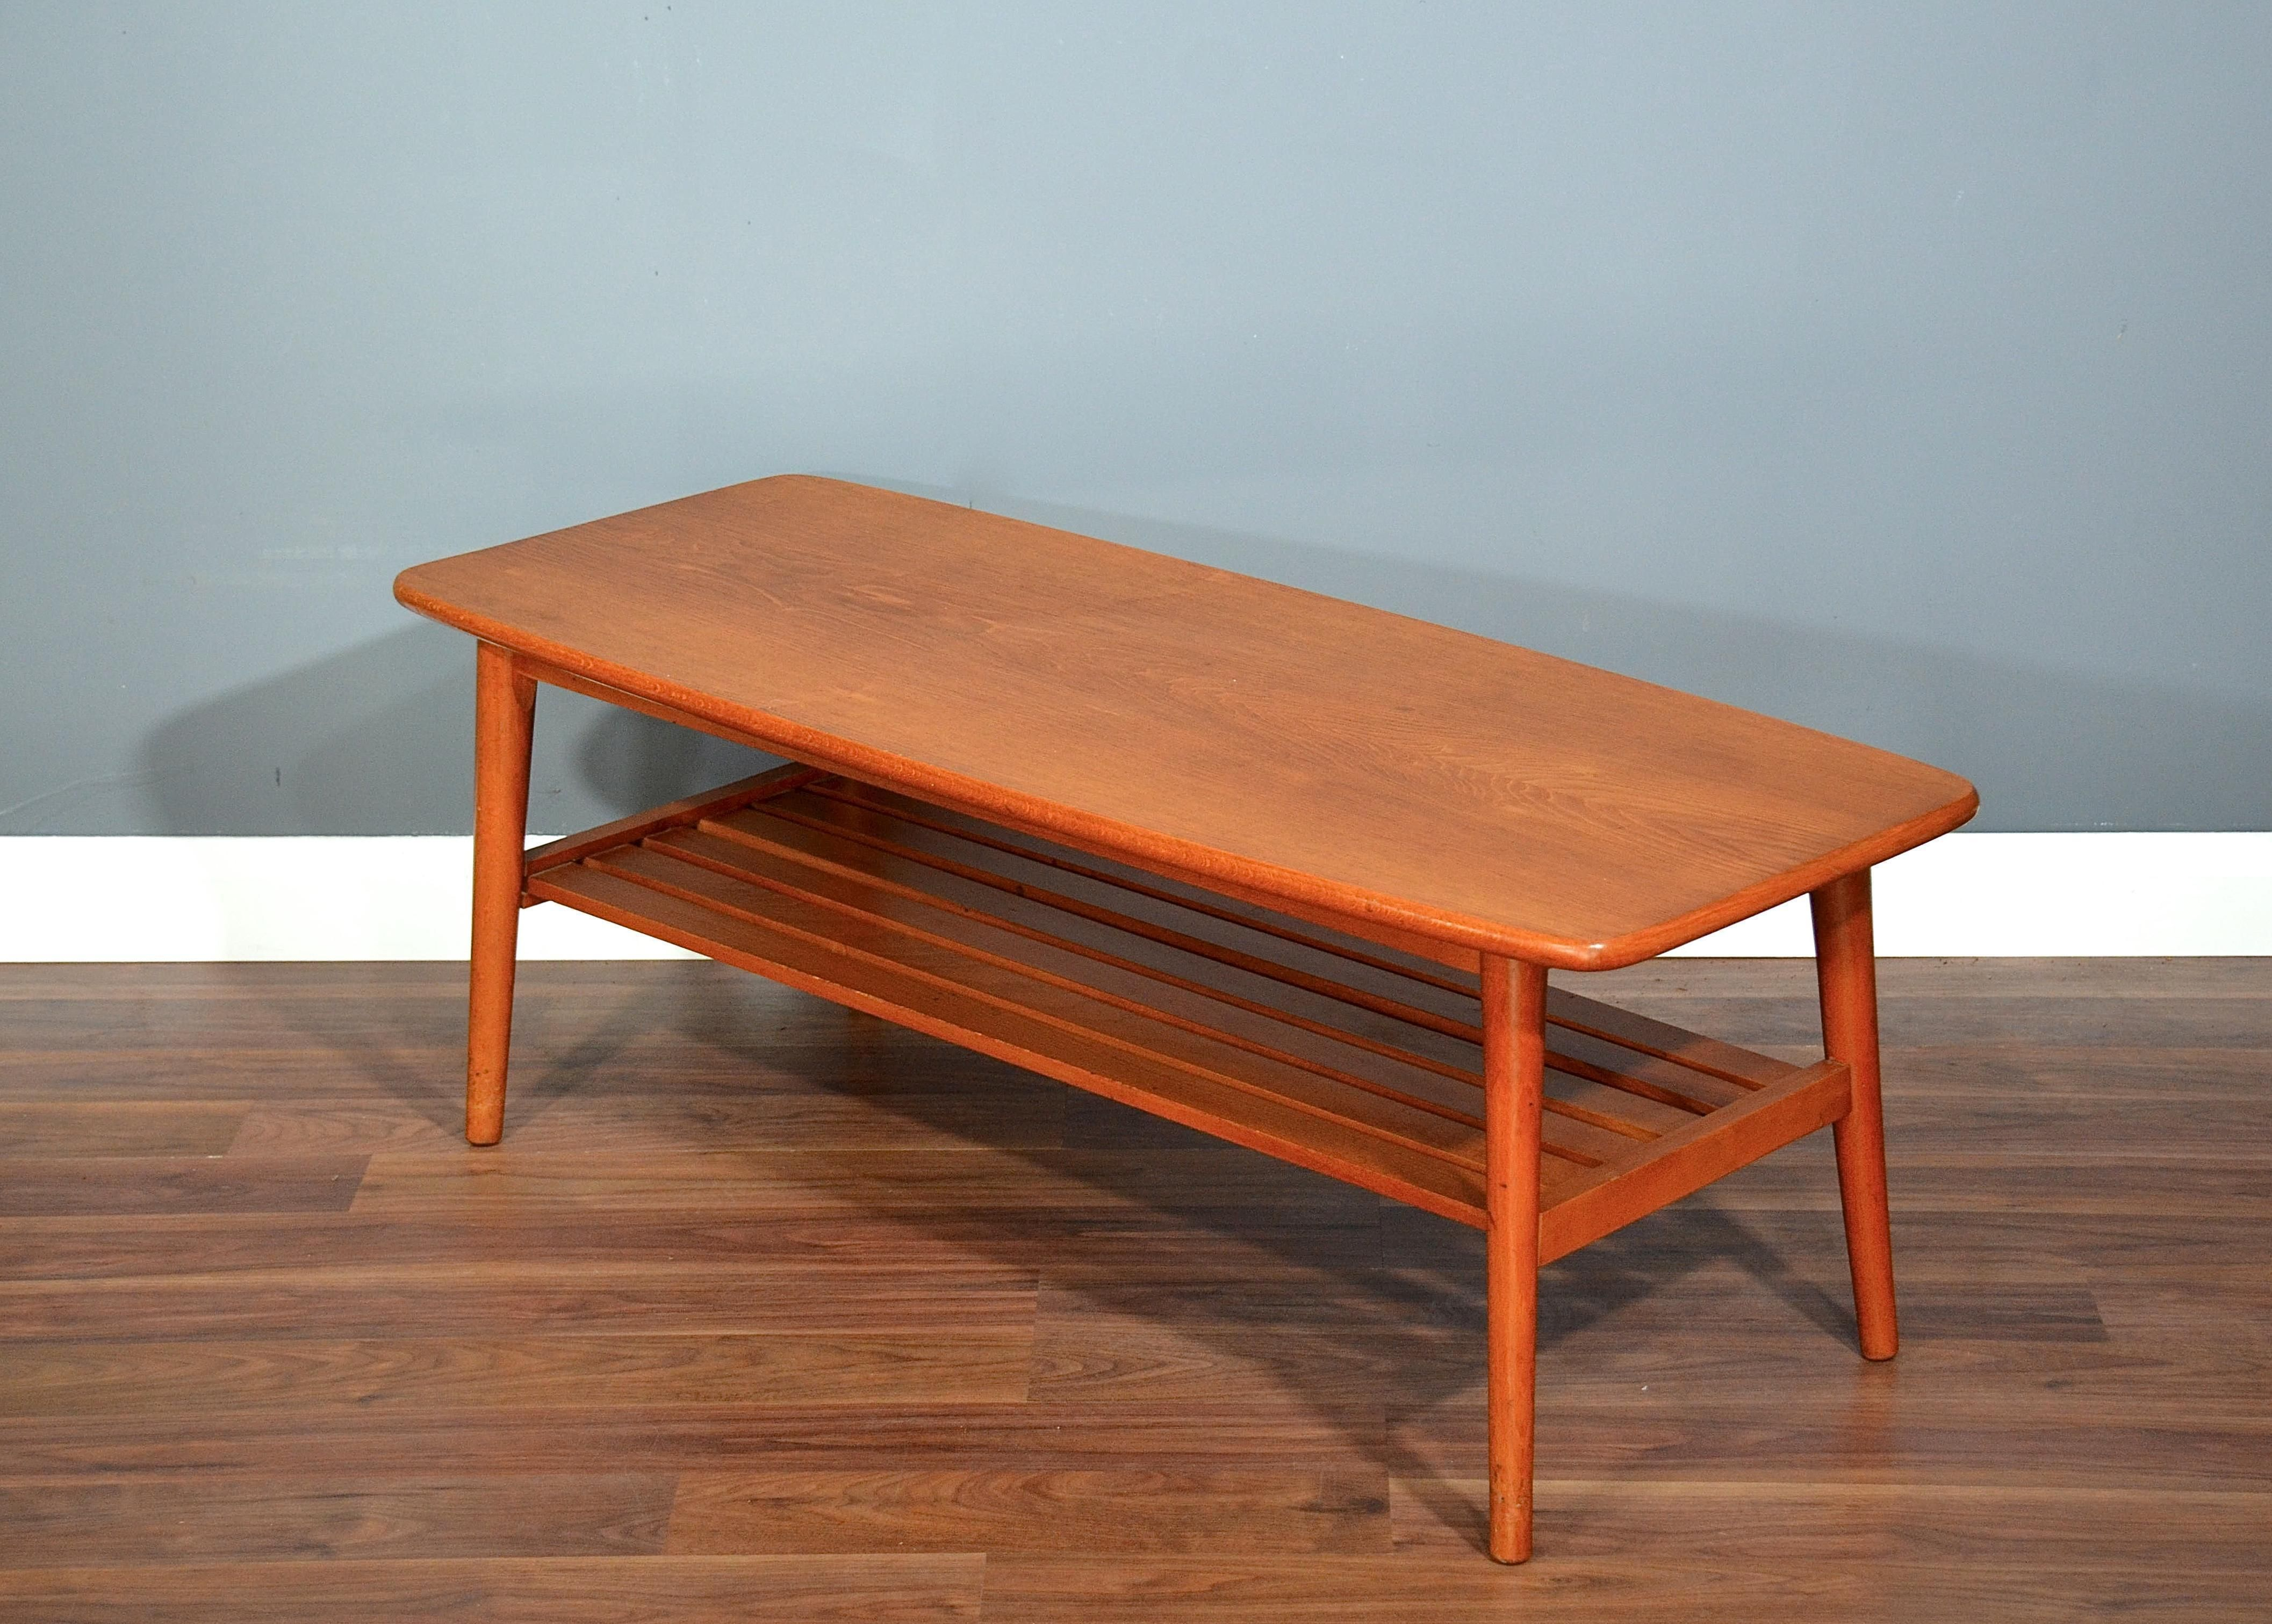 Vintage Danish Style Two Tier Teak Slatted Coffee Table Delivery Modern Mid Ce Mid Century Modern Coffee Table Mid Century Coffee Table Danish Coffee Table [ 3023 x 4228 Pixel ]